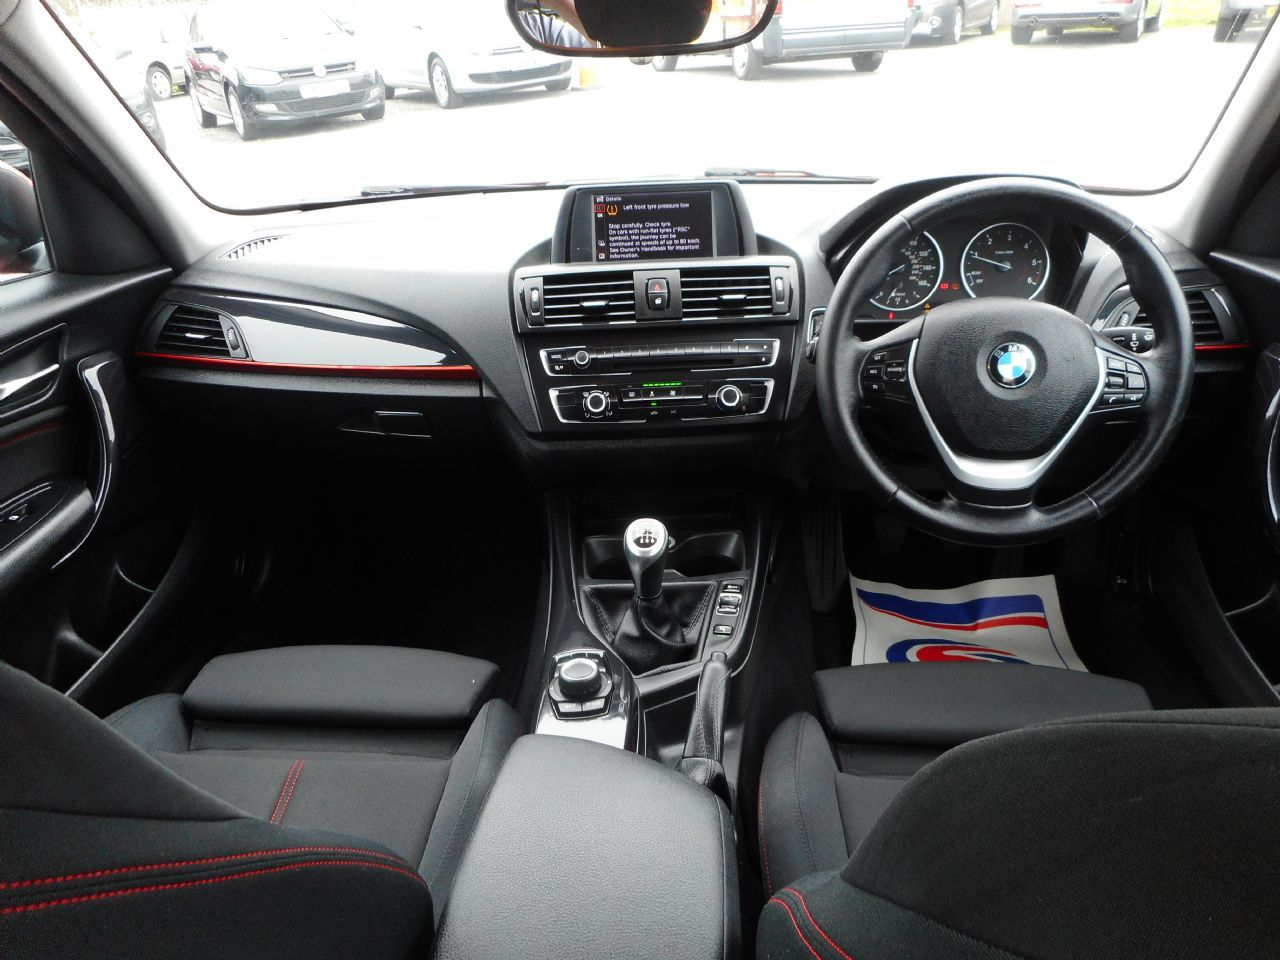 BMW SERIES 1 114d Sport (2013) - Picture 13